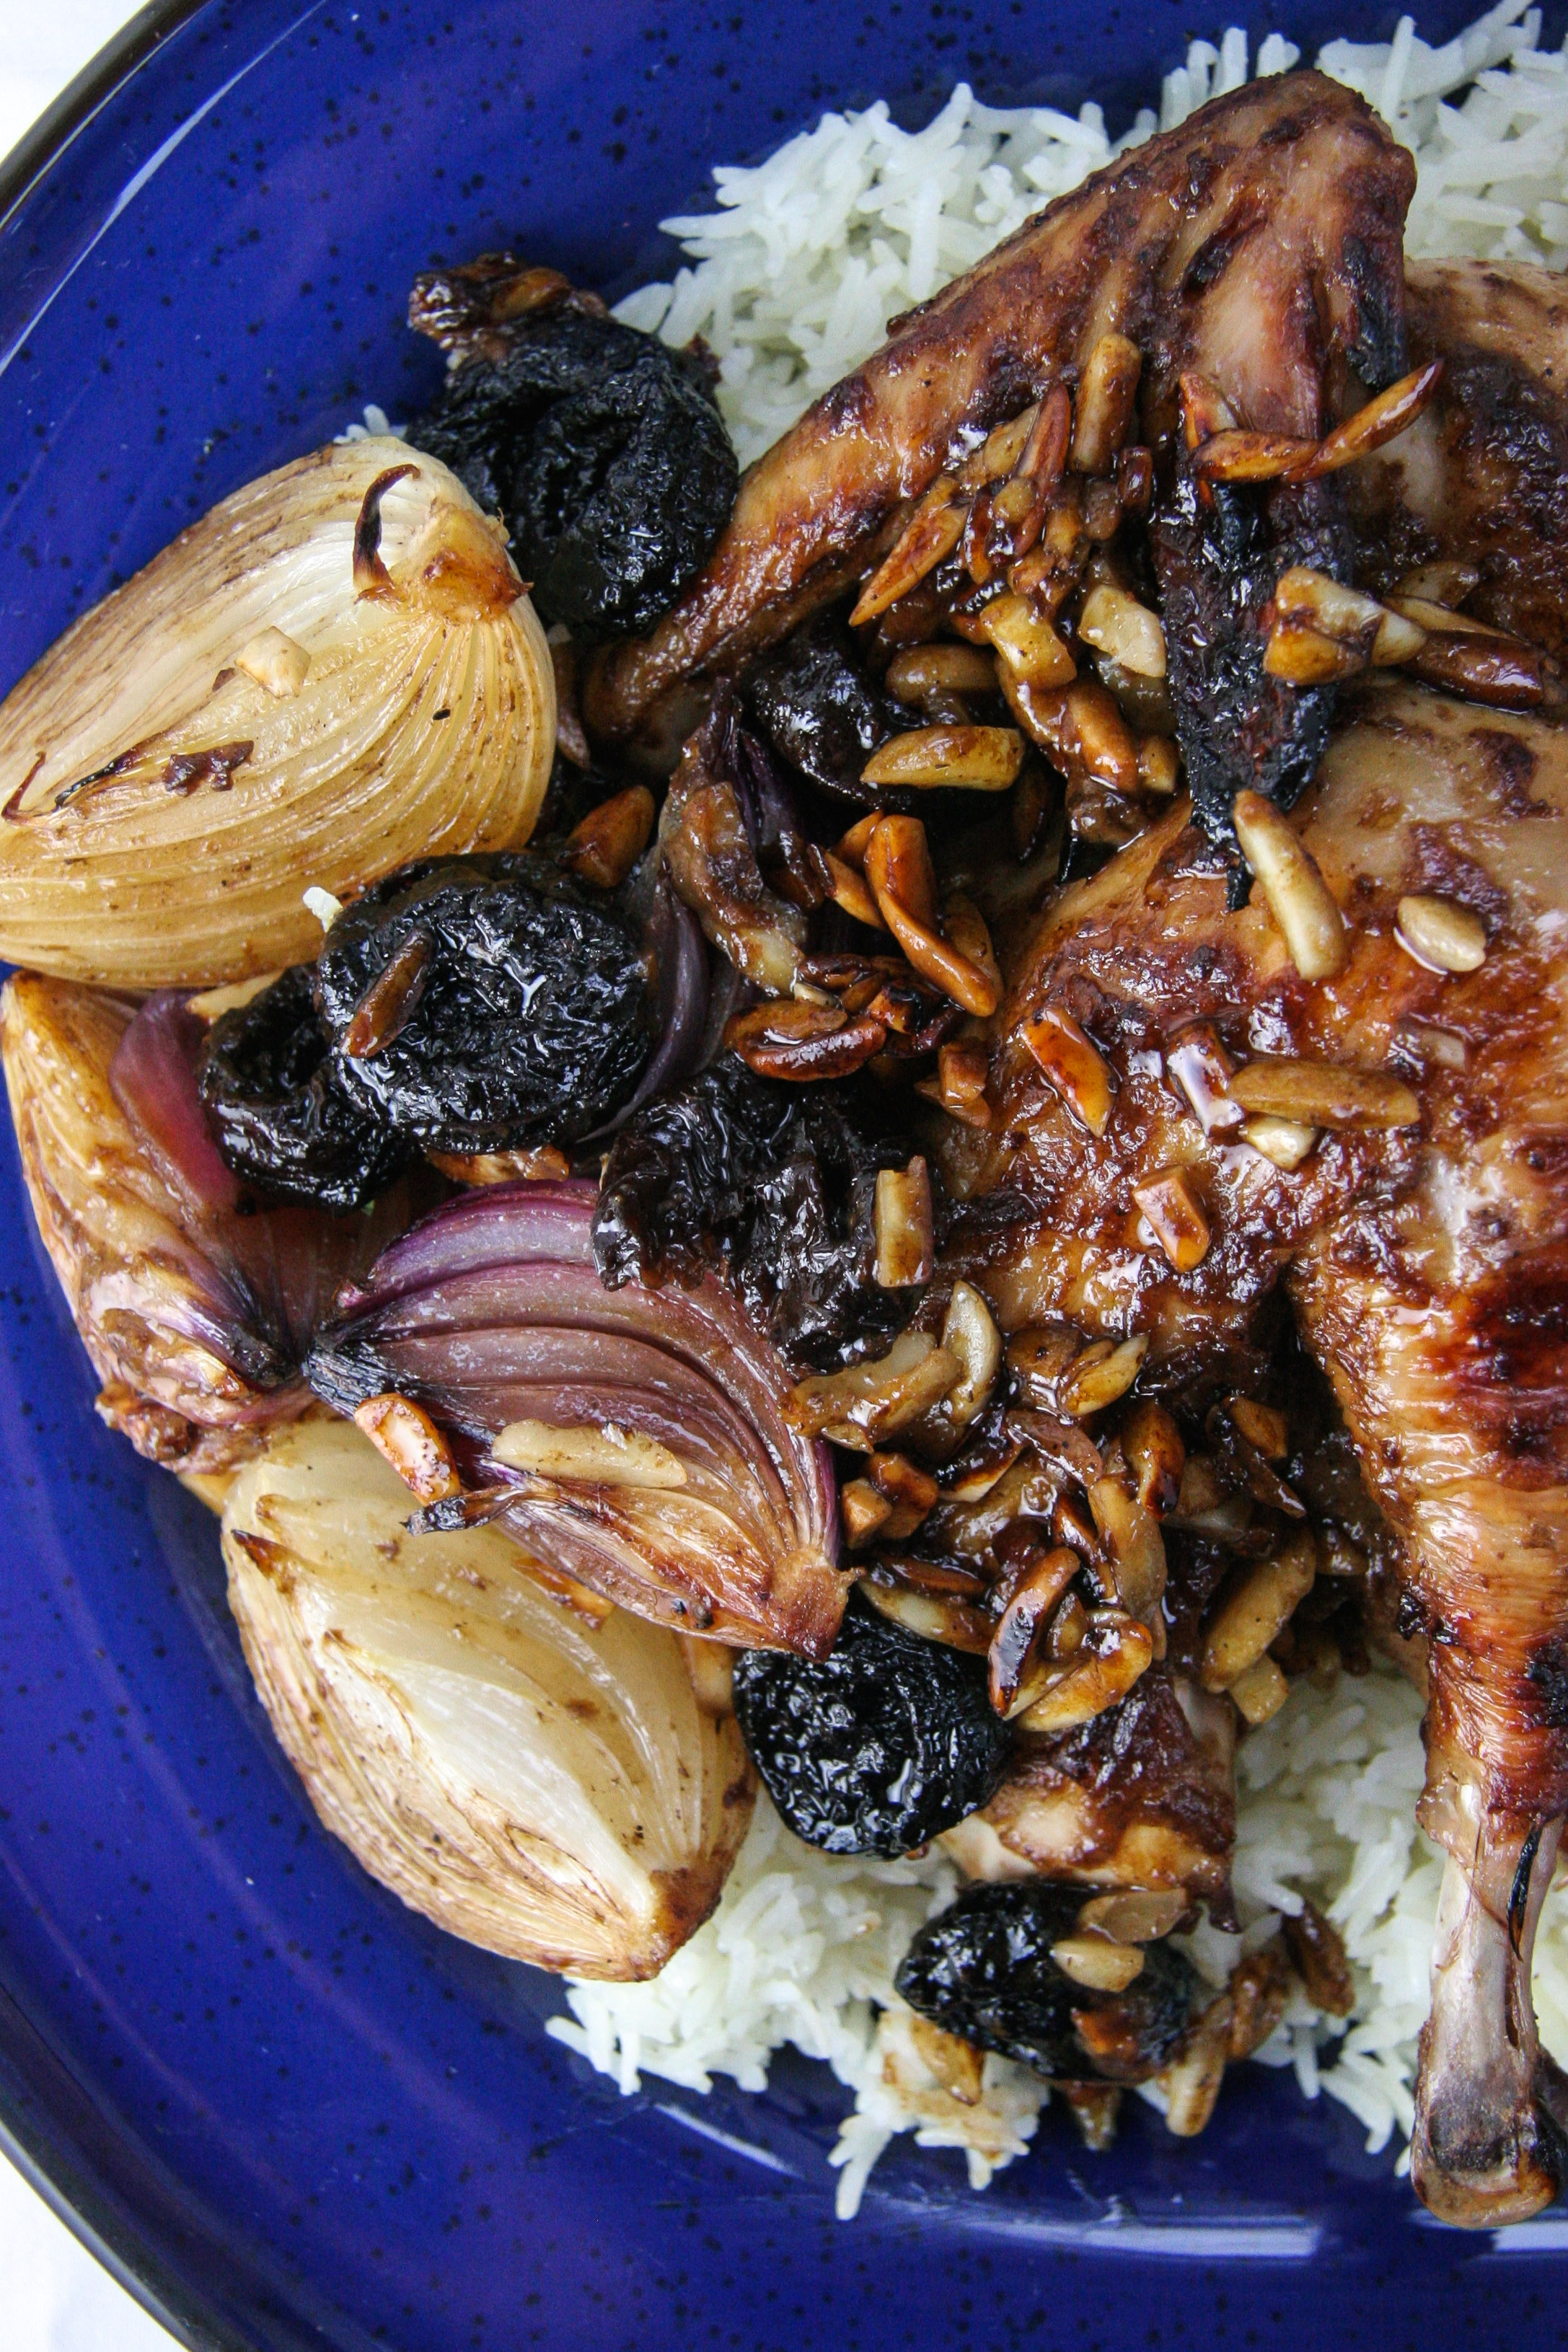 Prune & Almond Roast Chicken with Onions over Basmati Rice | I Will Not Eat Oysters